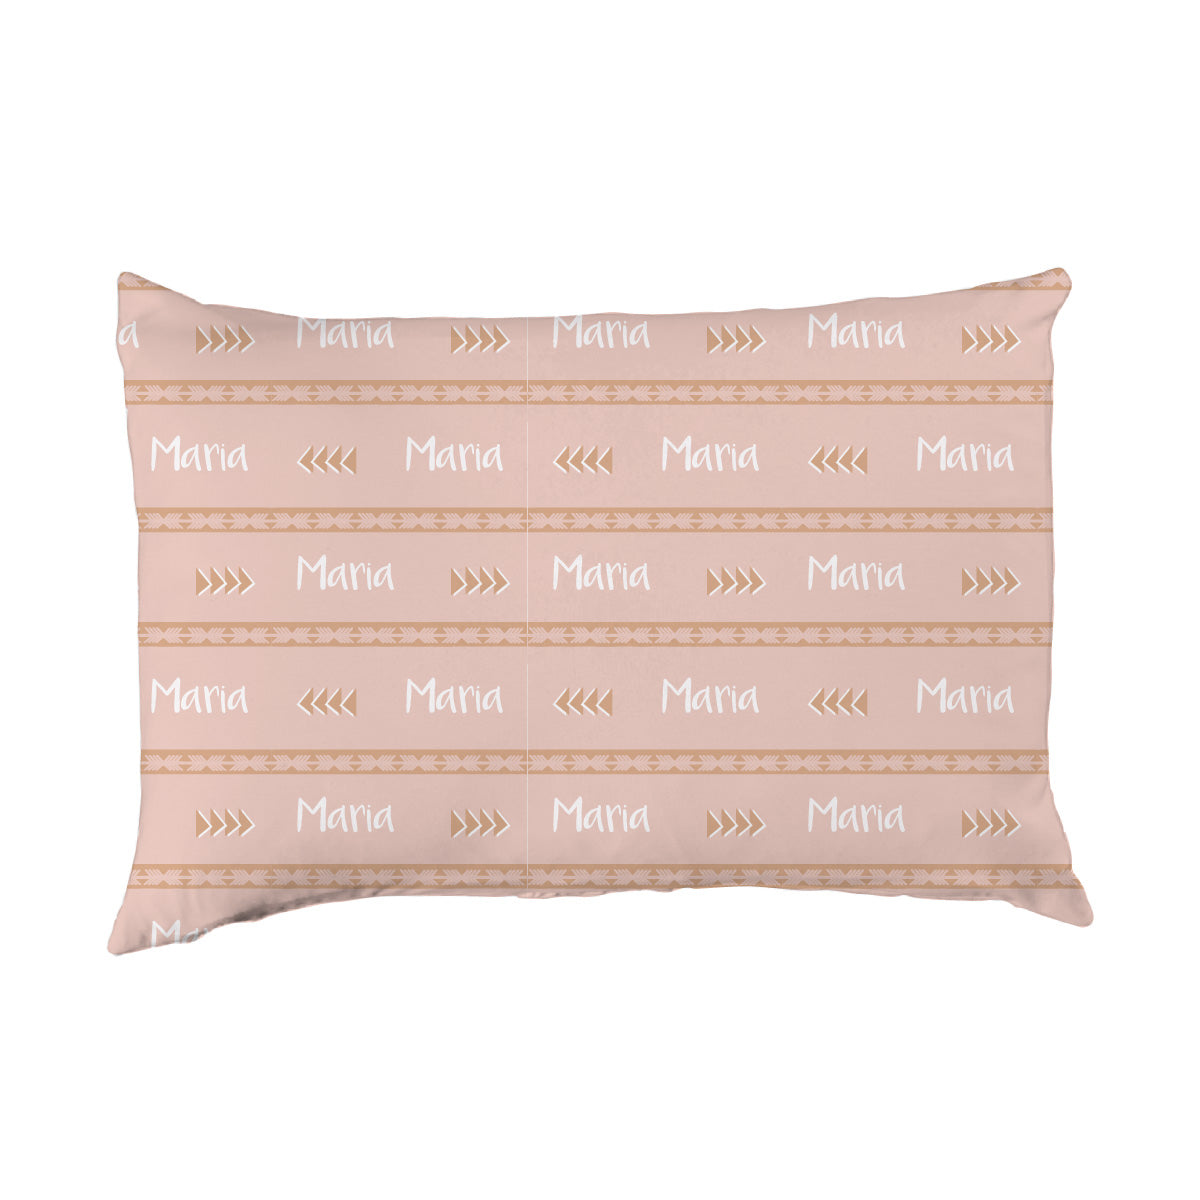 Maria's Santa Fe Aztec | Big Kid Pillow Case